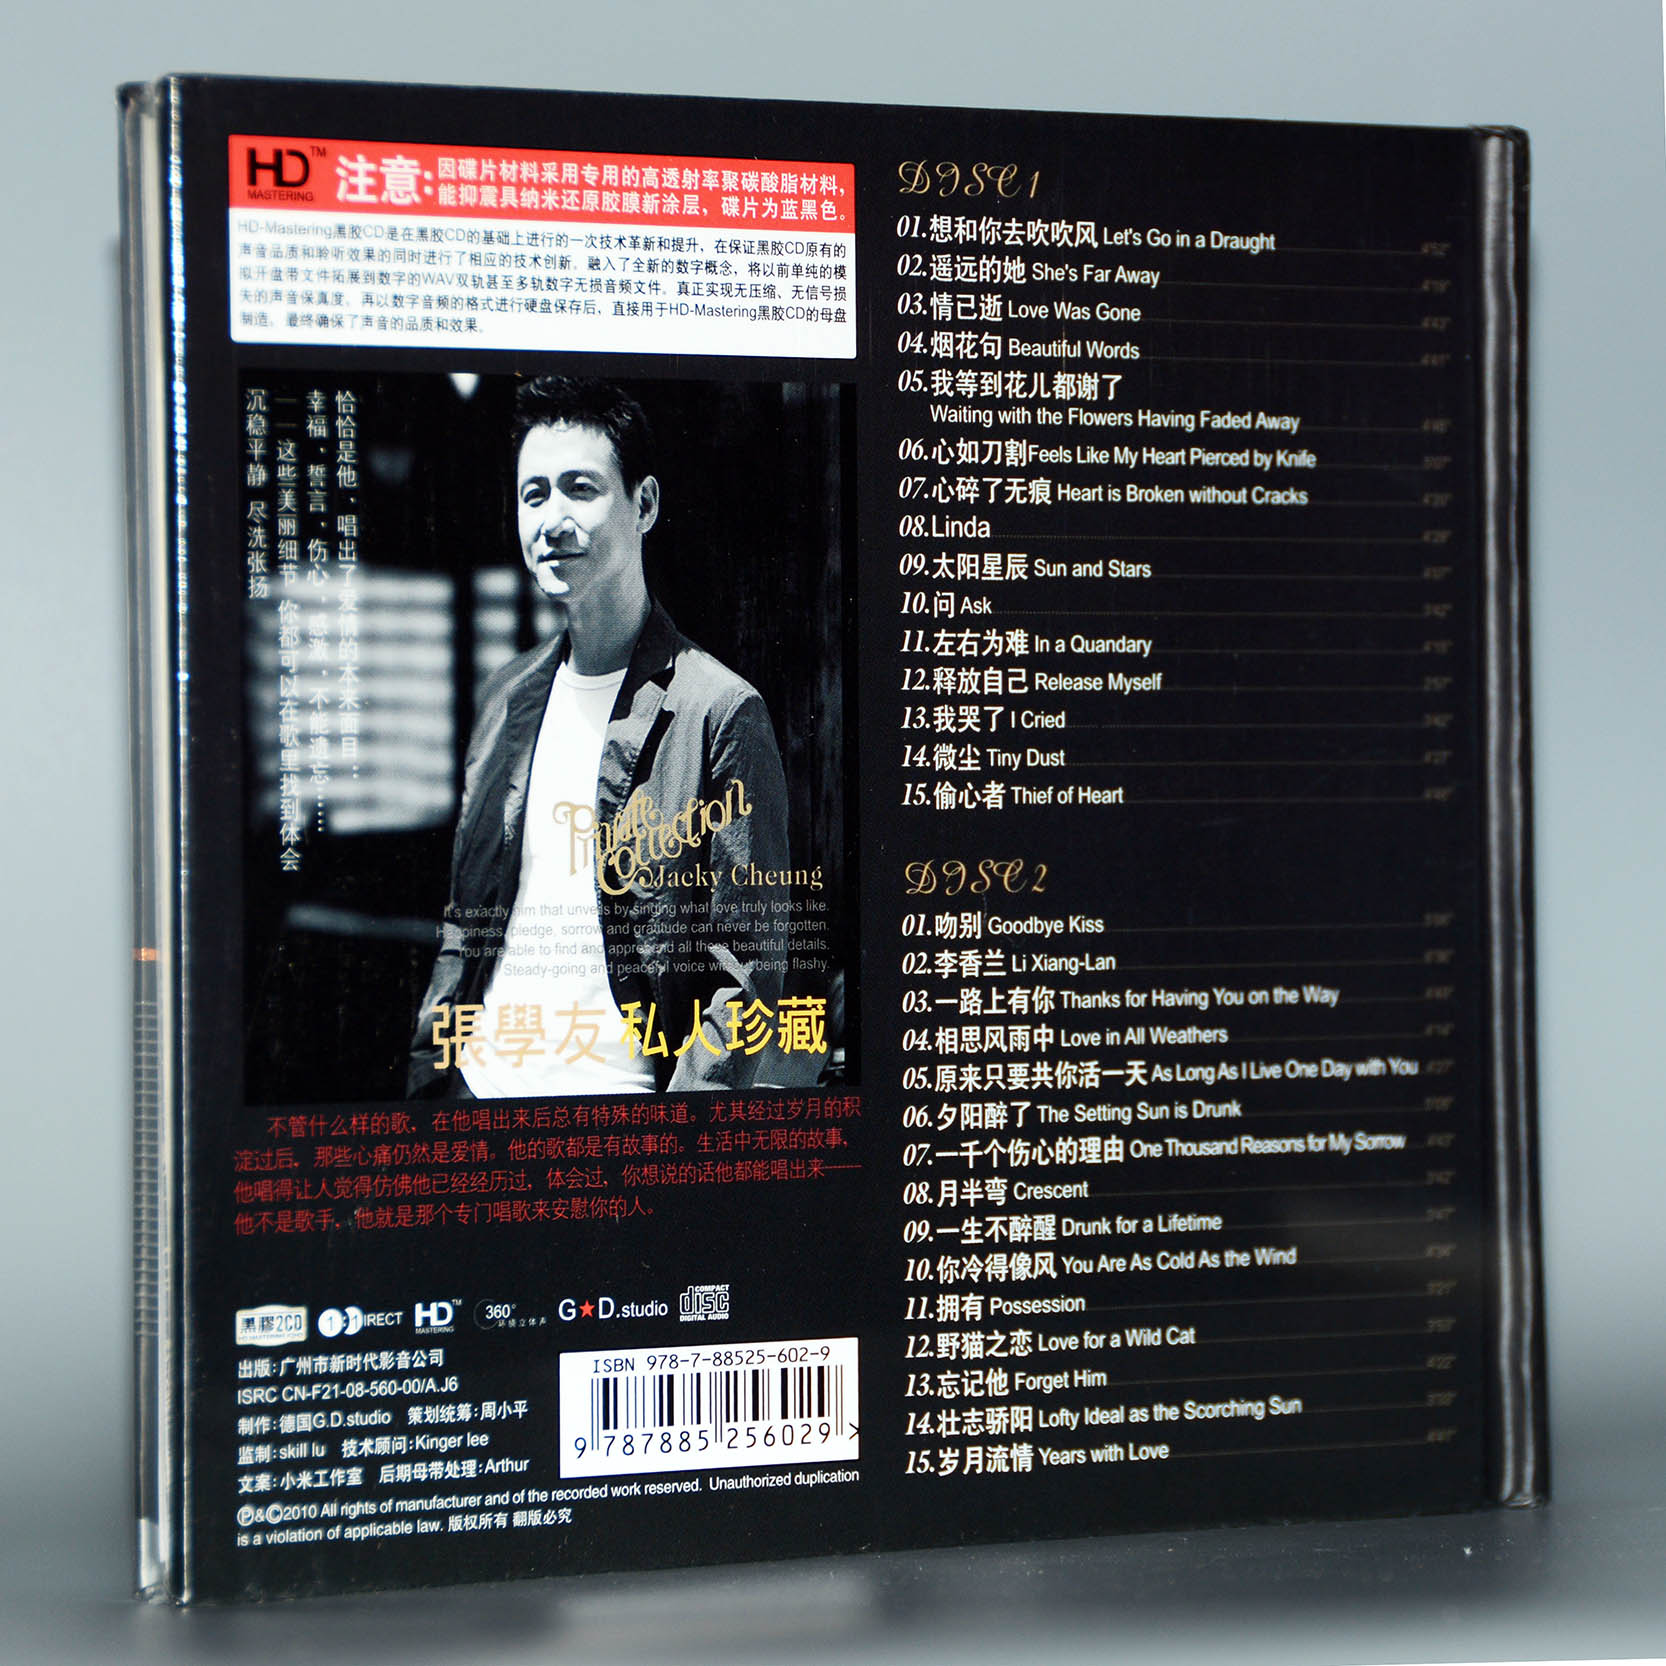 Genuine Jacky Cheung Private Collection Vinyl CD Classic Old